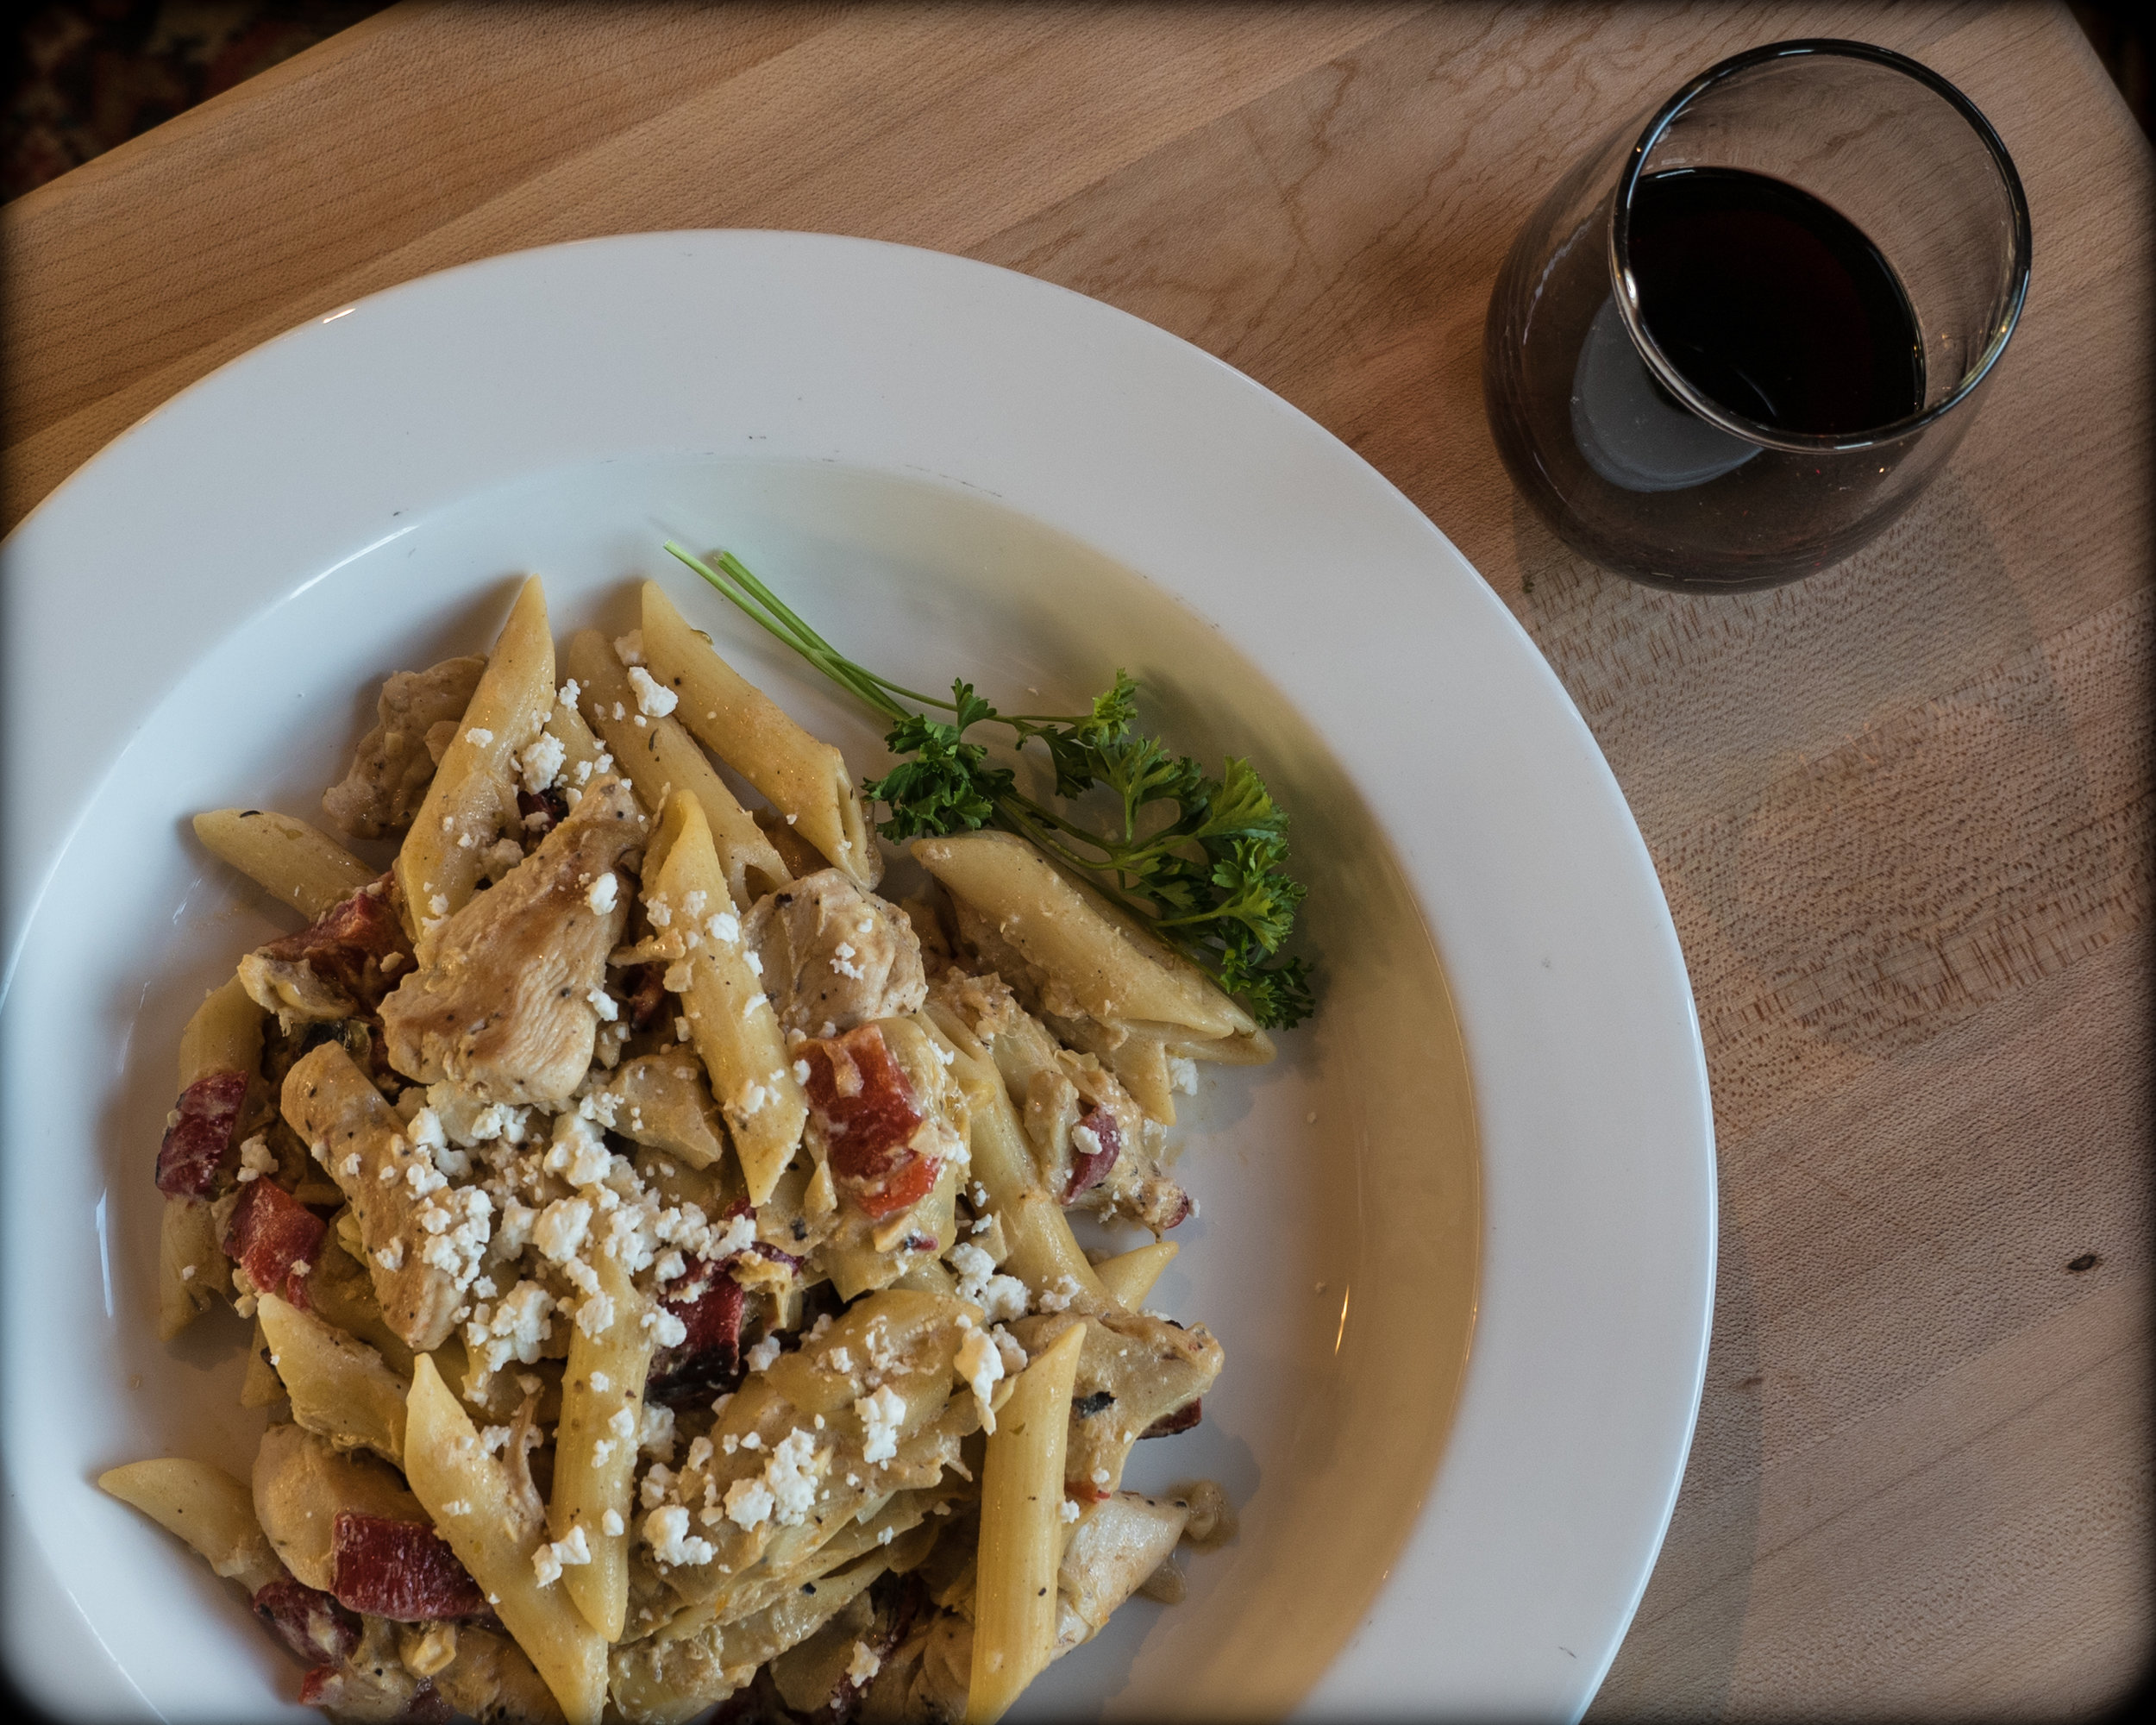 Chicken Penne with artichoke hearts, roasted red peppers, and goat cheese